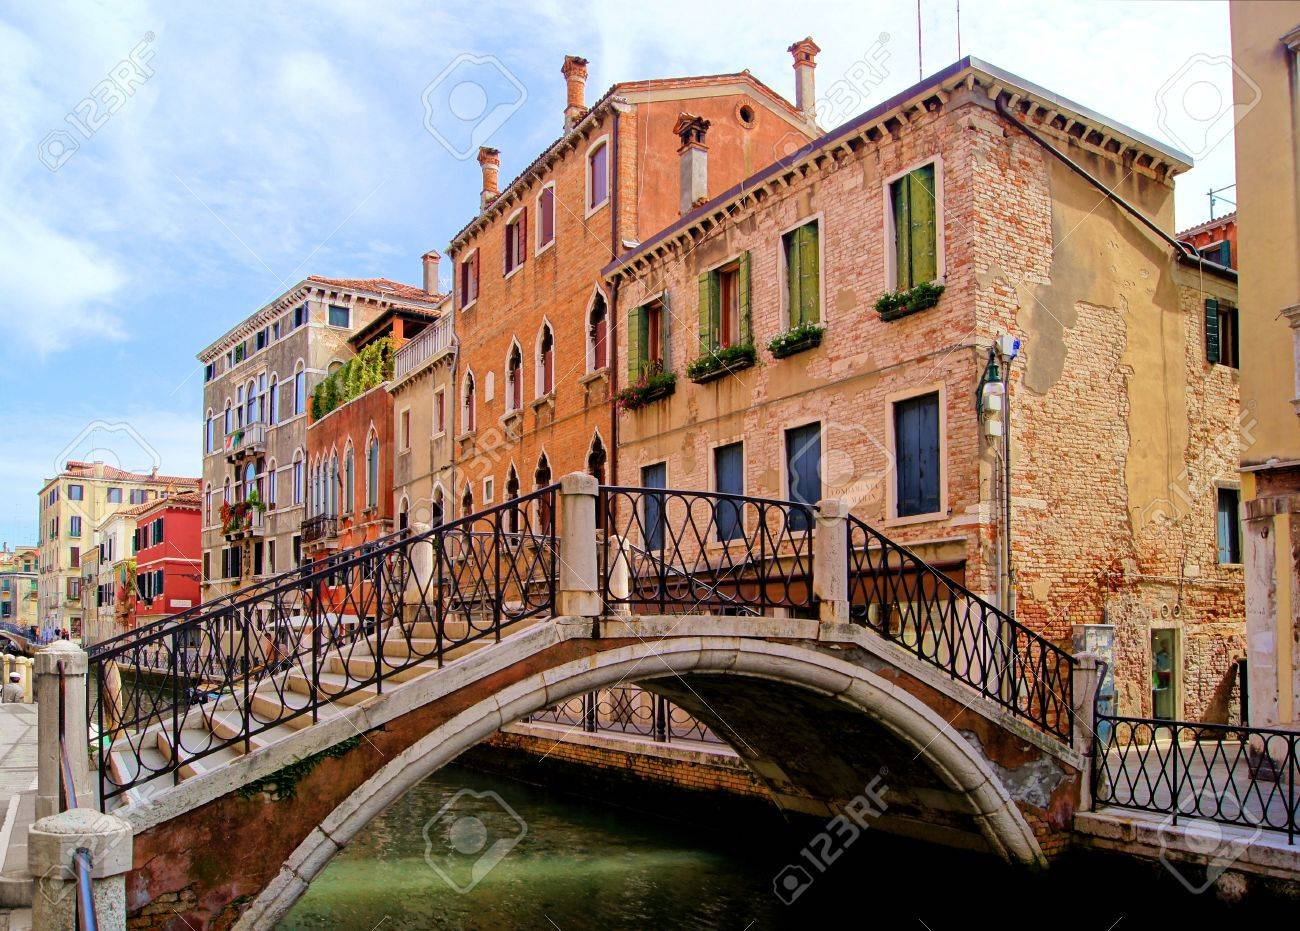 Bridge and architecture along the canals of Venice, Italy Stock Photo -  12327097